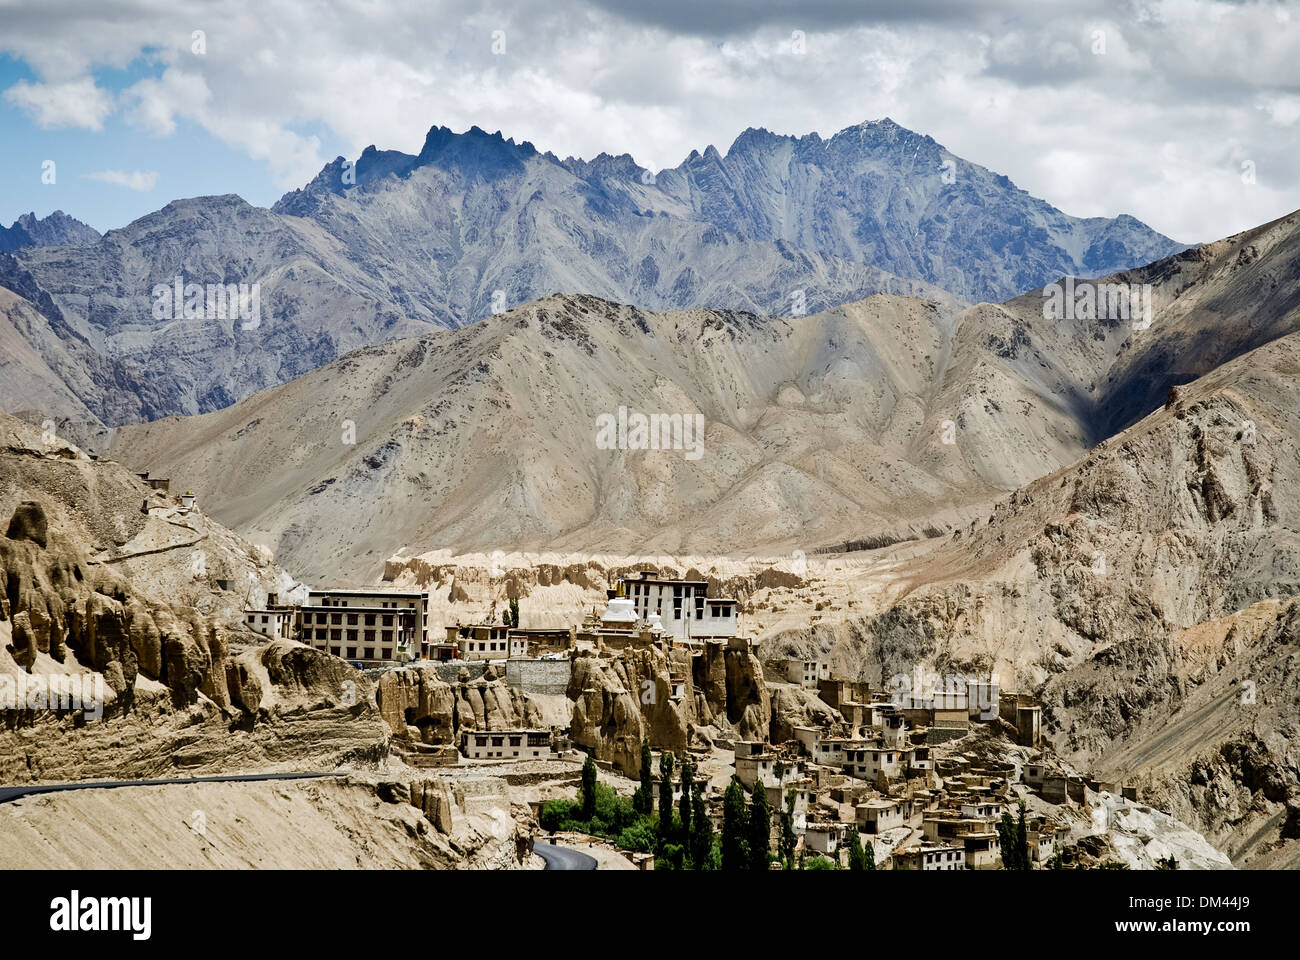 Ladakh, India - 15 July 2009: a village in a mountain landscape - Stock Image